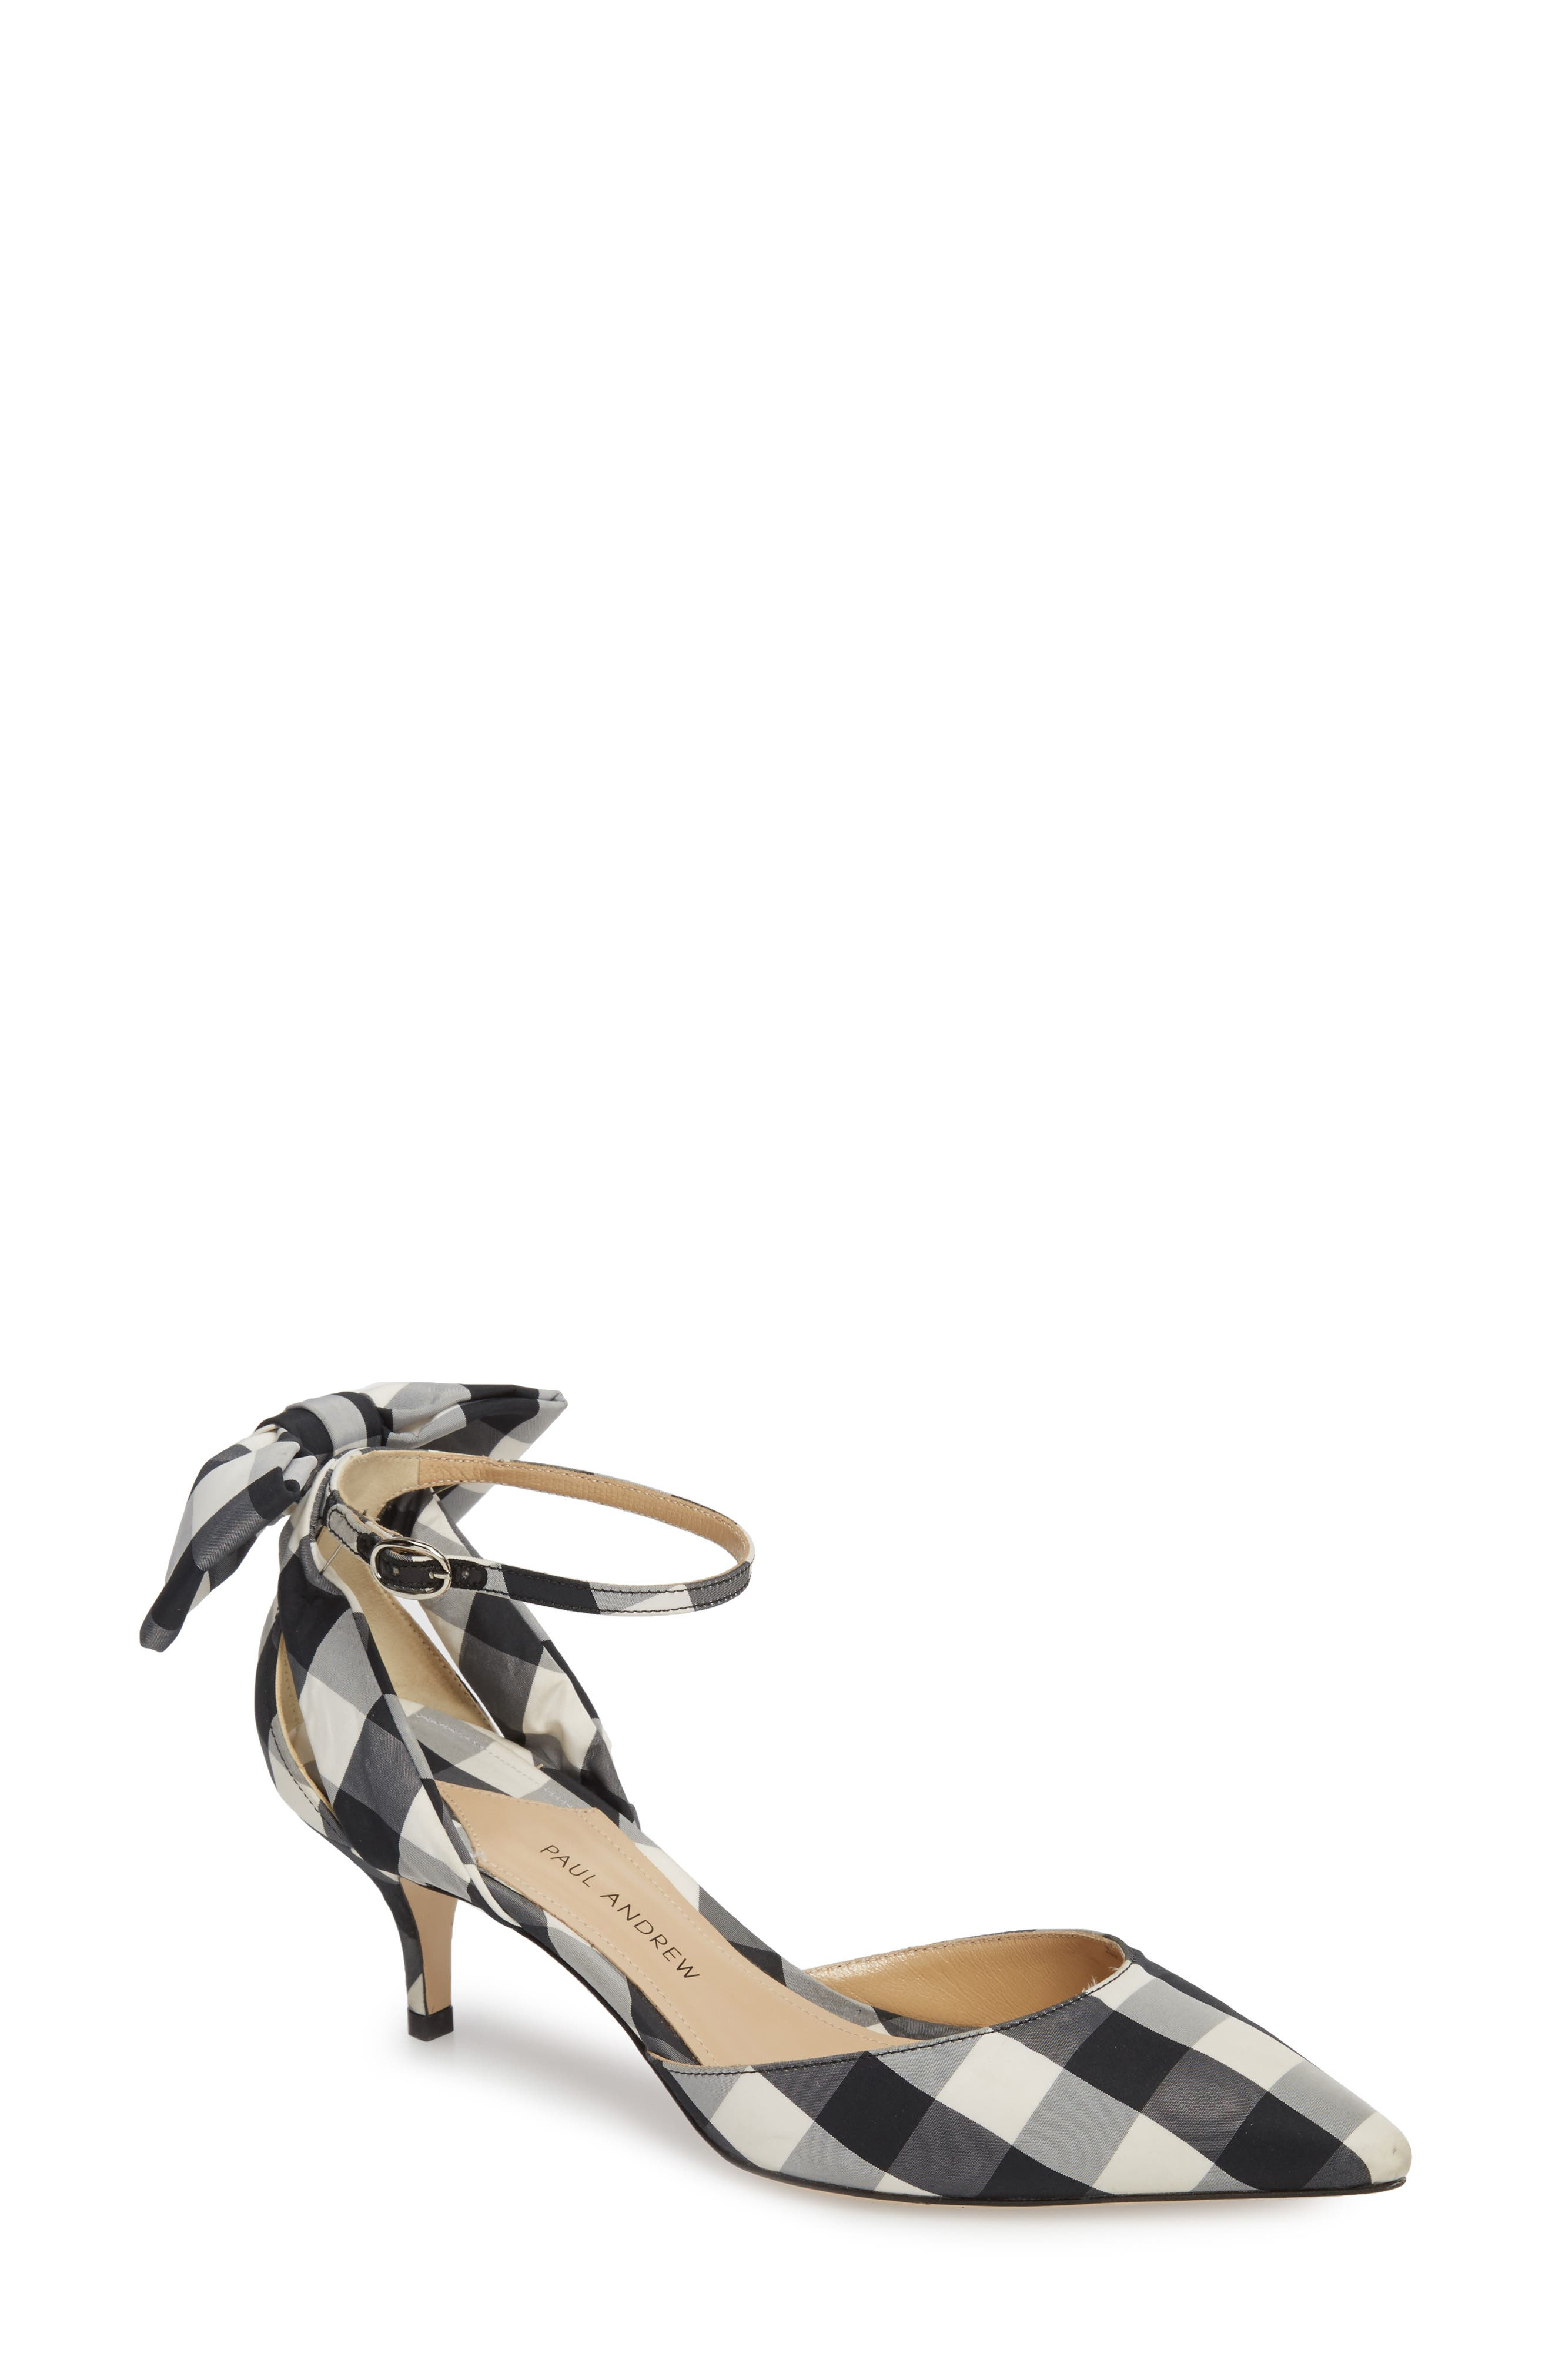 Main Image - Paul Andrew Anya Bow Ankle Strap Pump (Women)